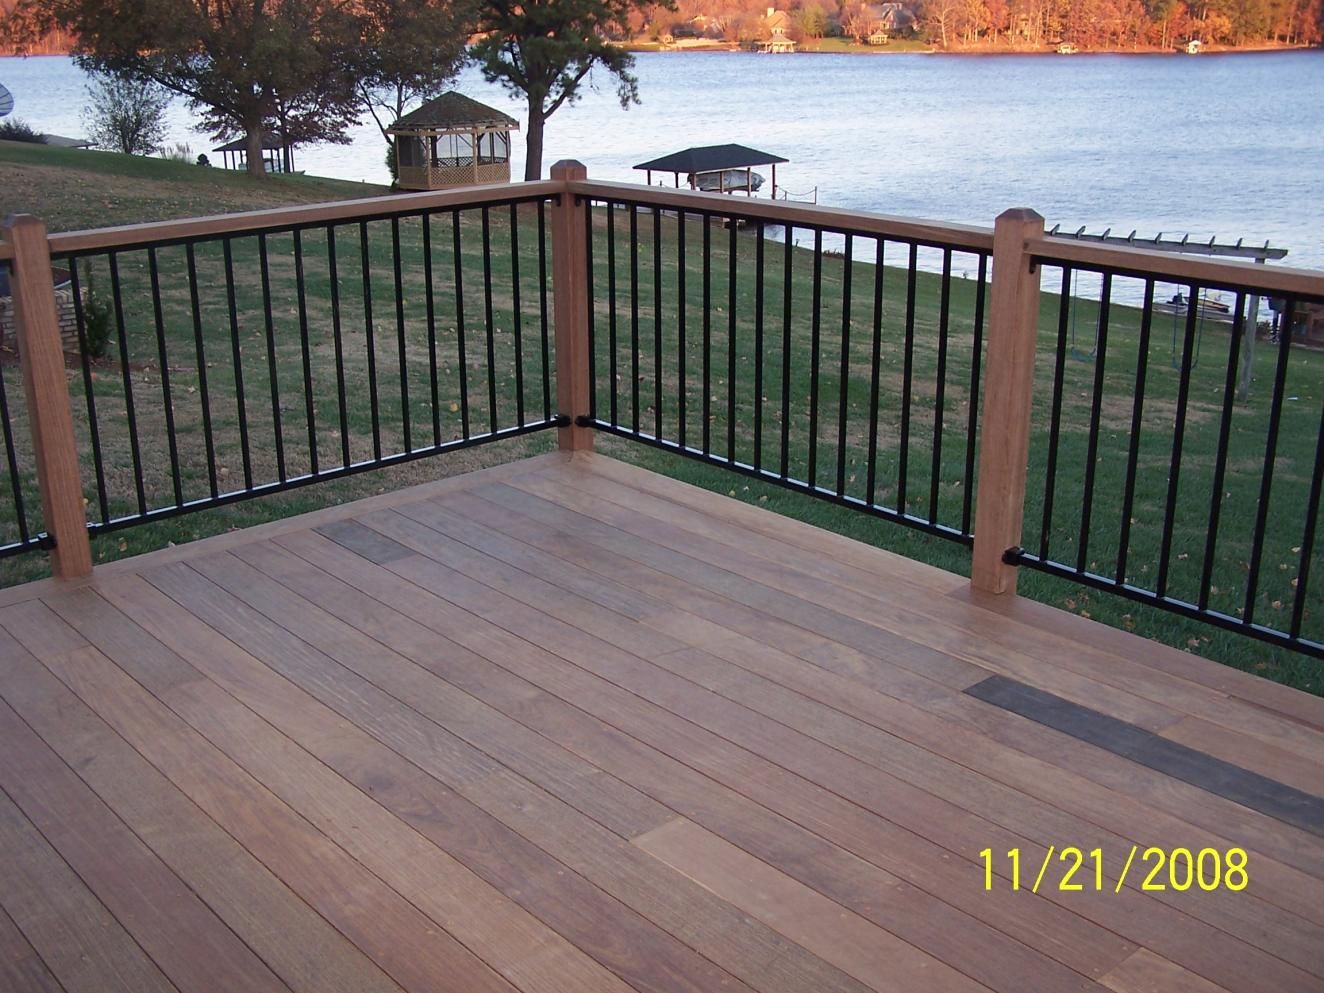 Charming Brown Wooden Deck In Trex Decking Cost Matched With Black Railing For Patio Decor Ideas